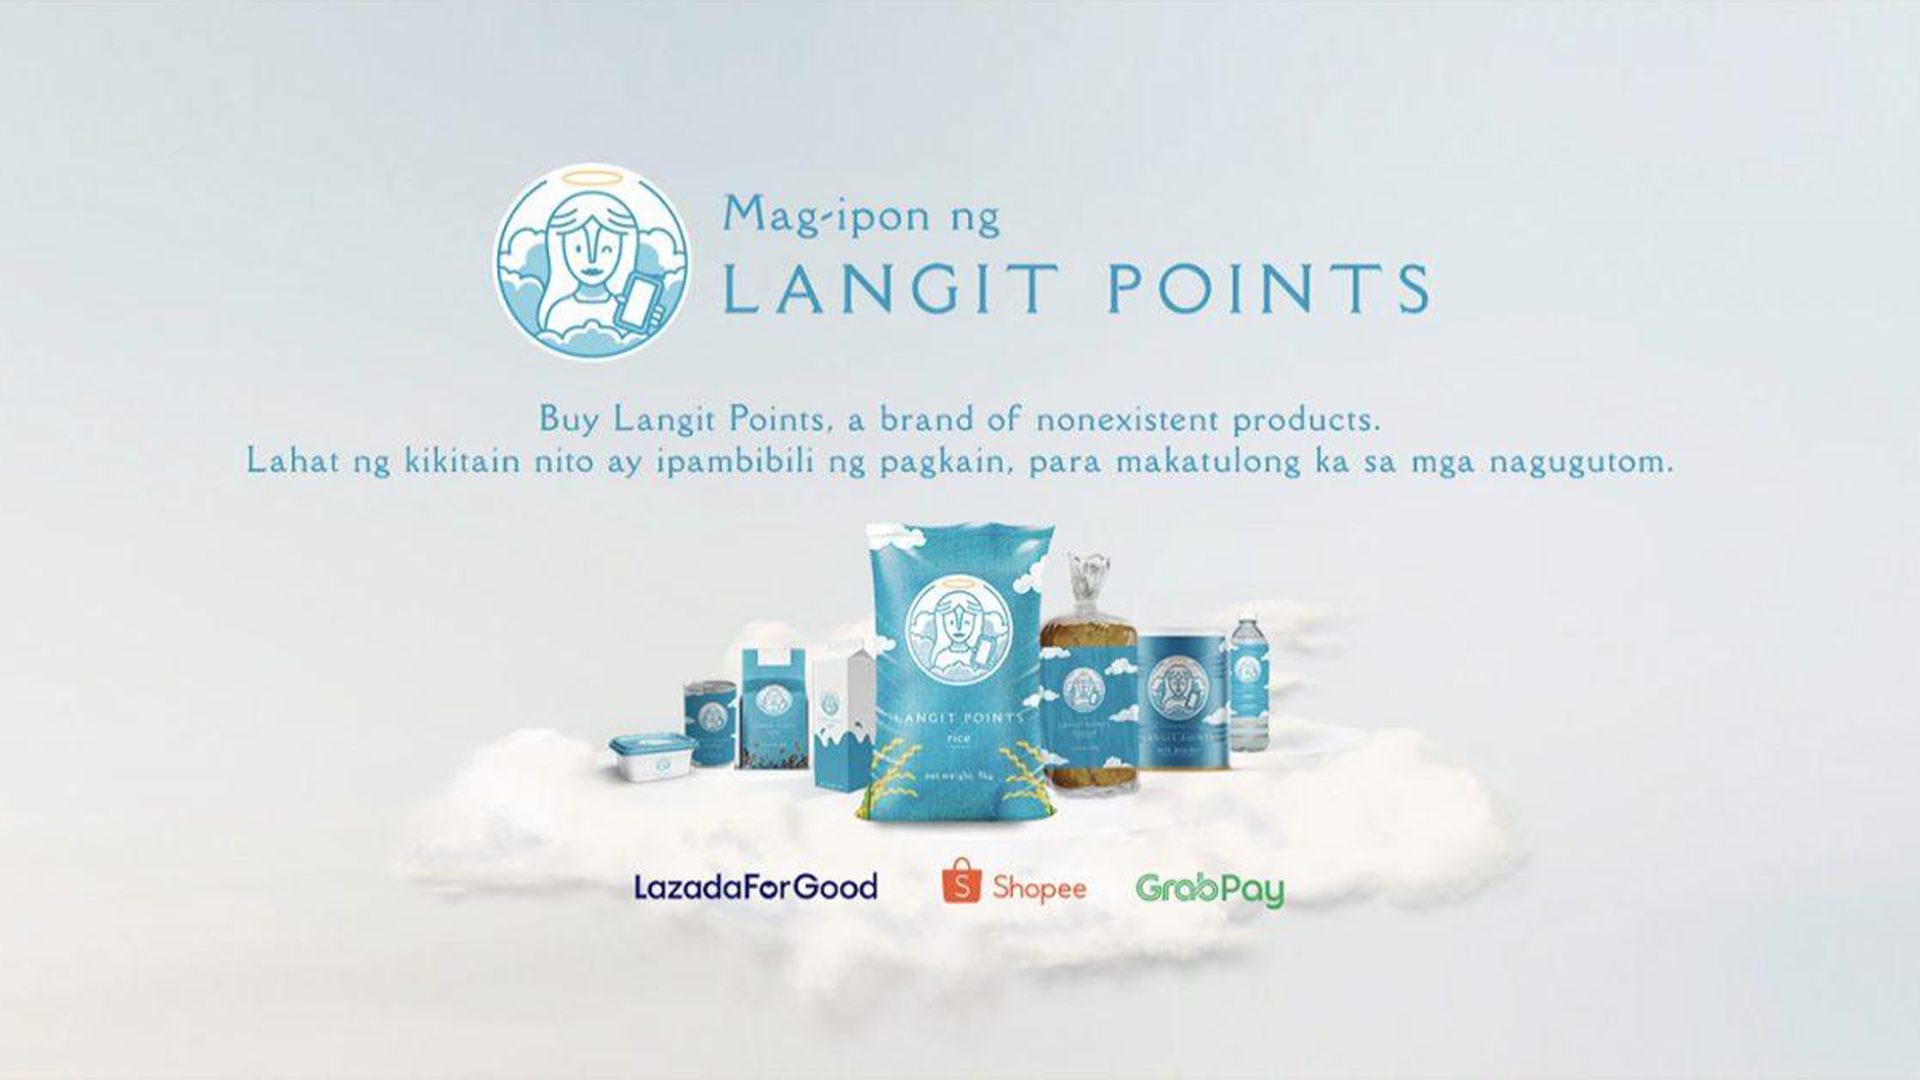 Losing langit points is no longer an issue! GIGIL's campaign for WIA lets you purchase them